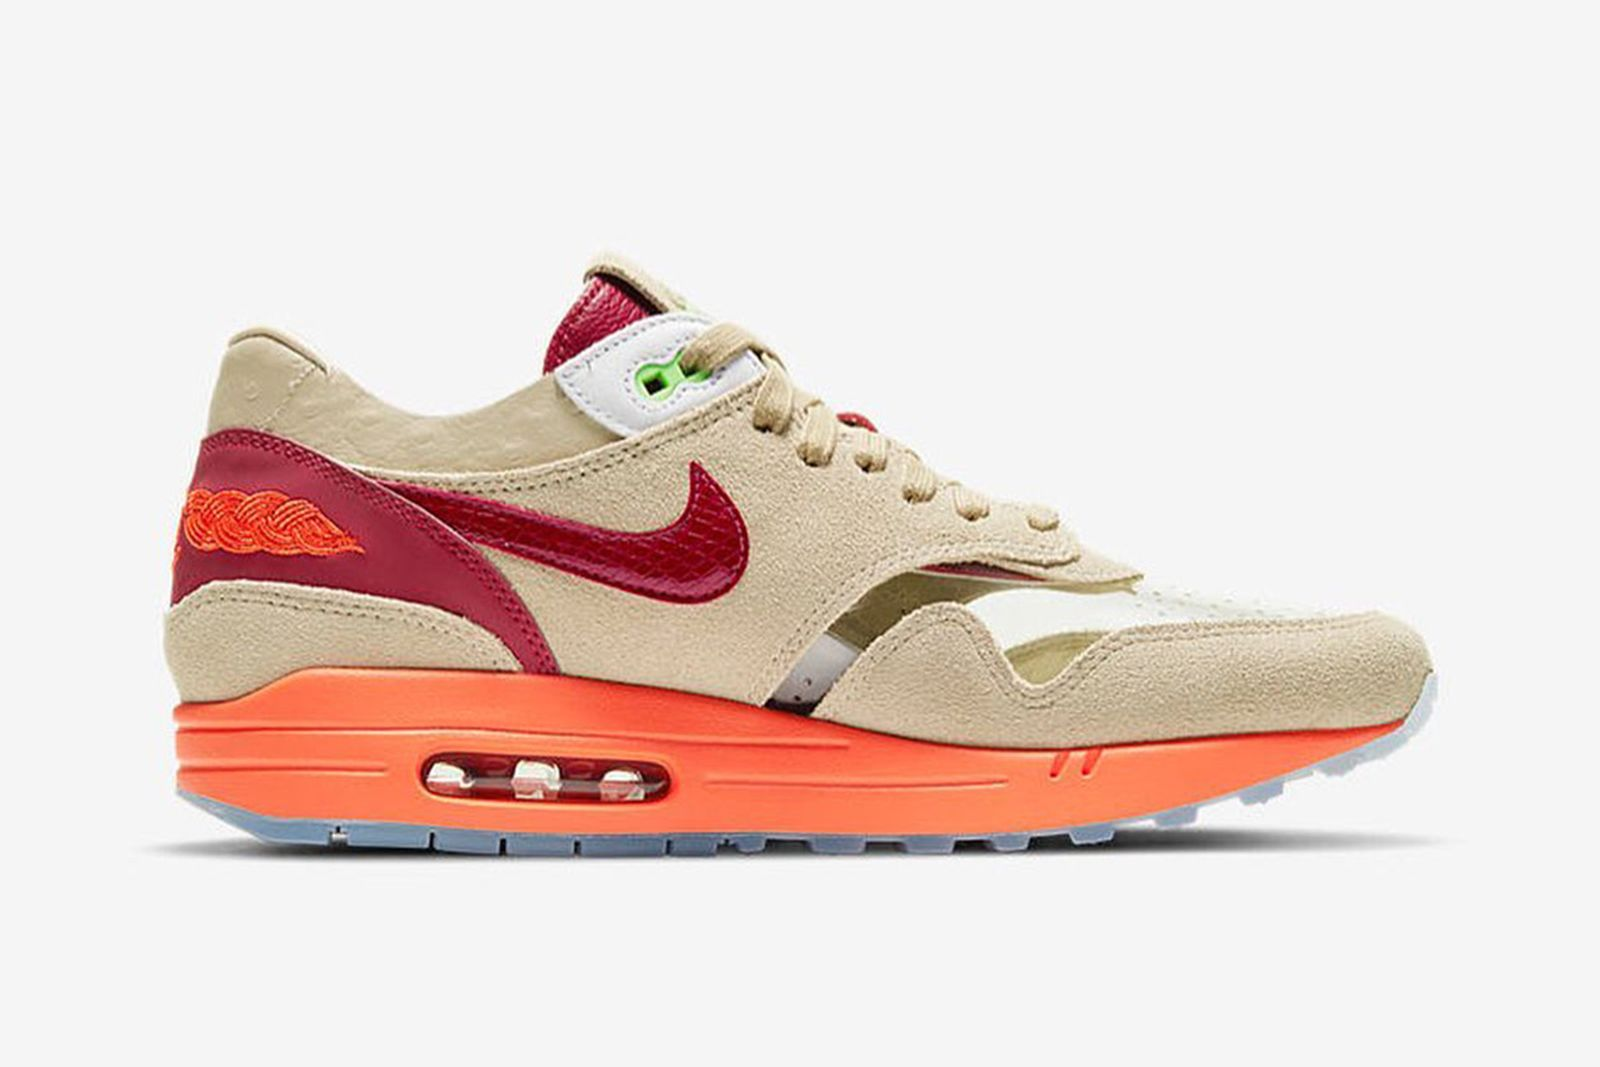 clot-nike-air-max-1-kiss-of-death-2021-release-date-price-04